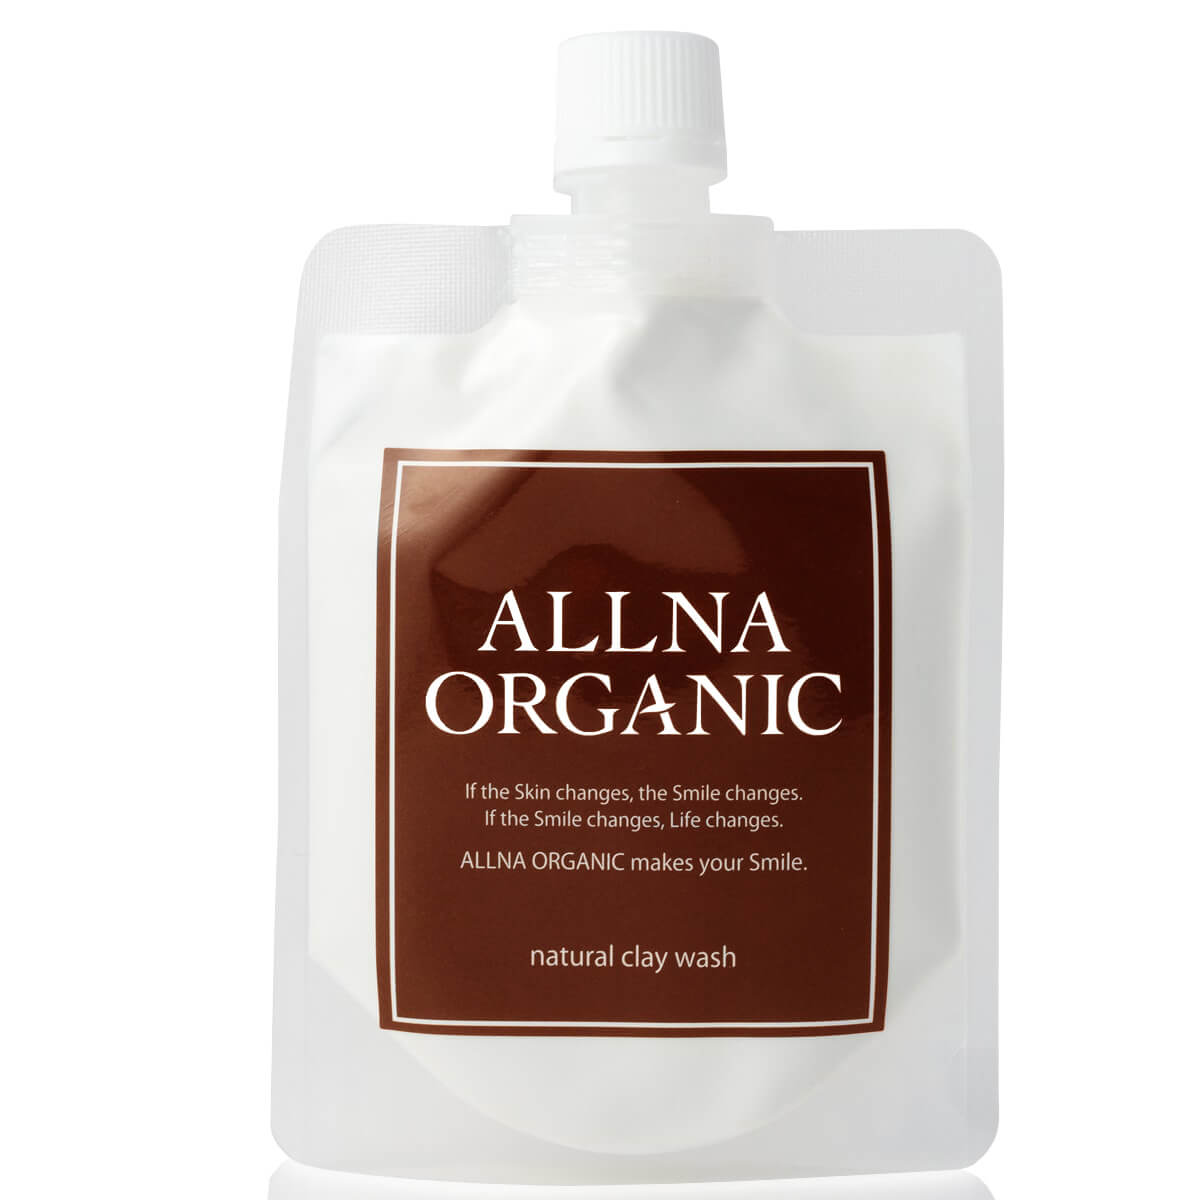 https://www.allna.jp/product/skincare/images/img_mud_washing.jpg